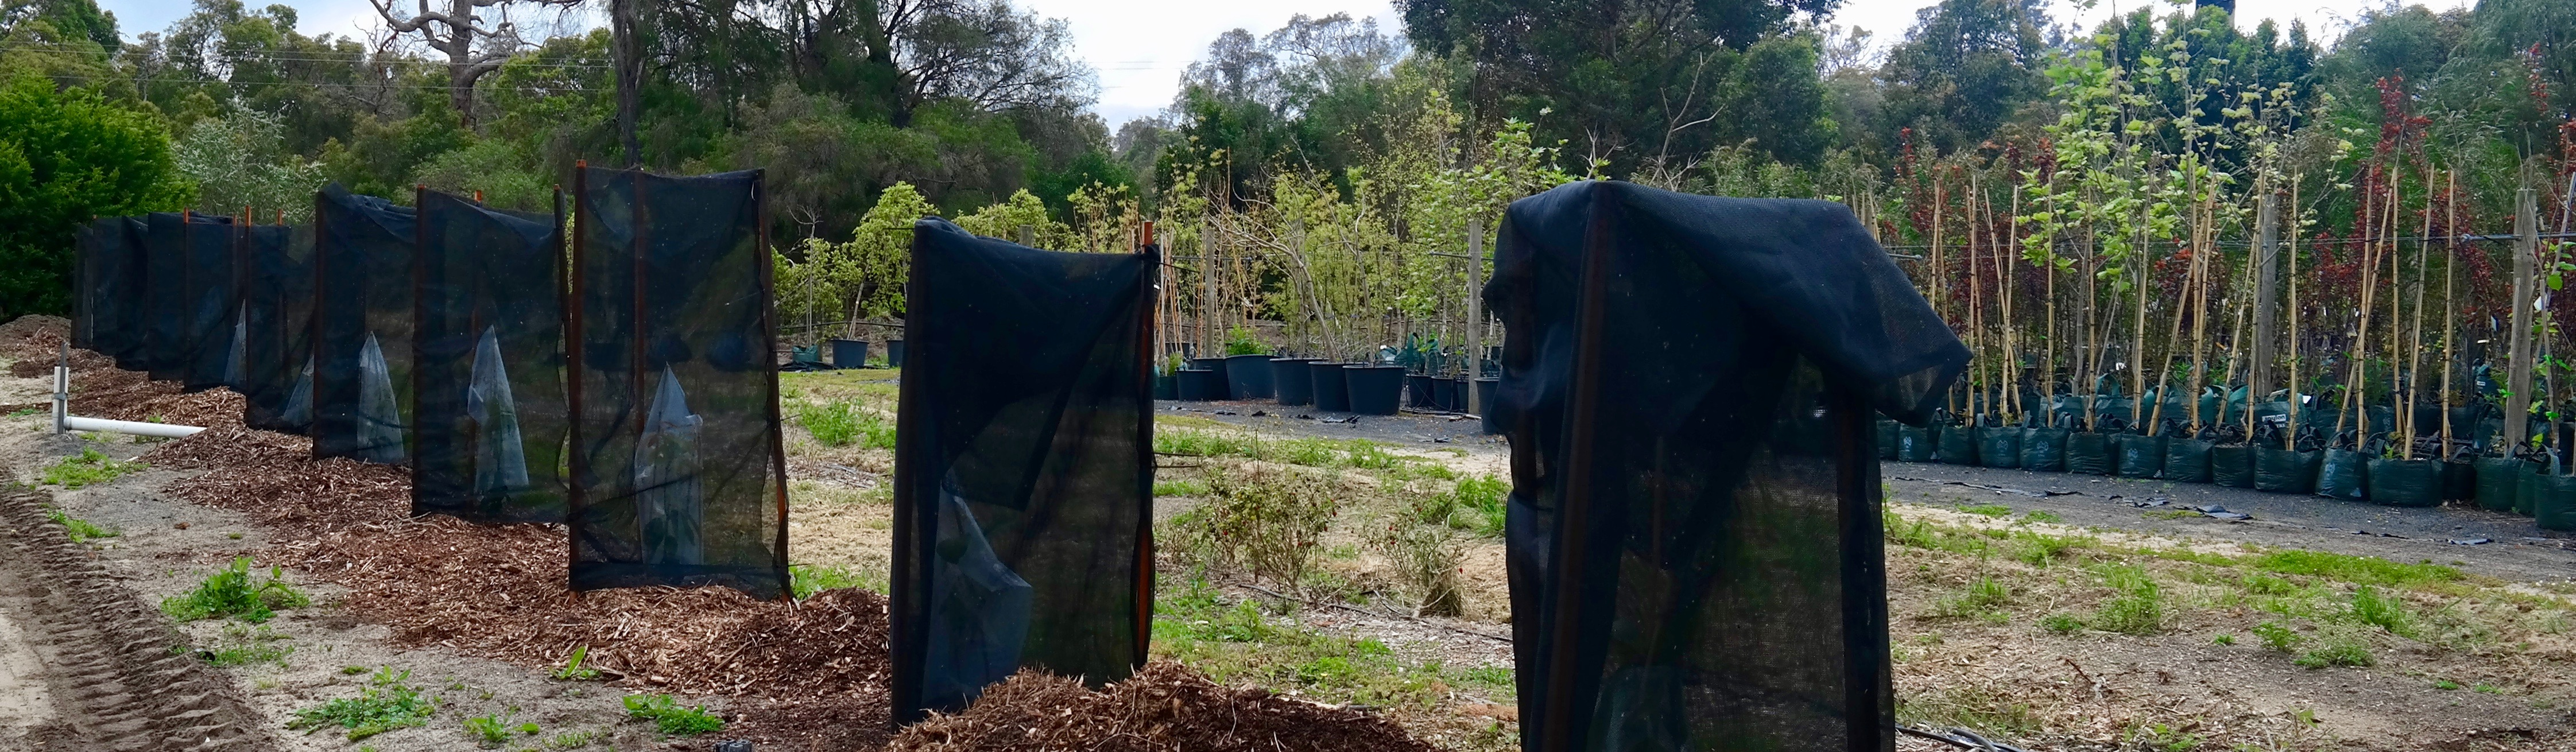 Avocado tree planting a step by step guide by lakeside plants - Fir tree planting instructions a vigorous garden ...